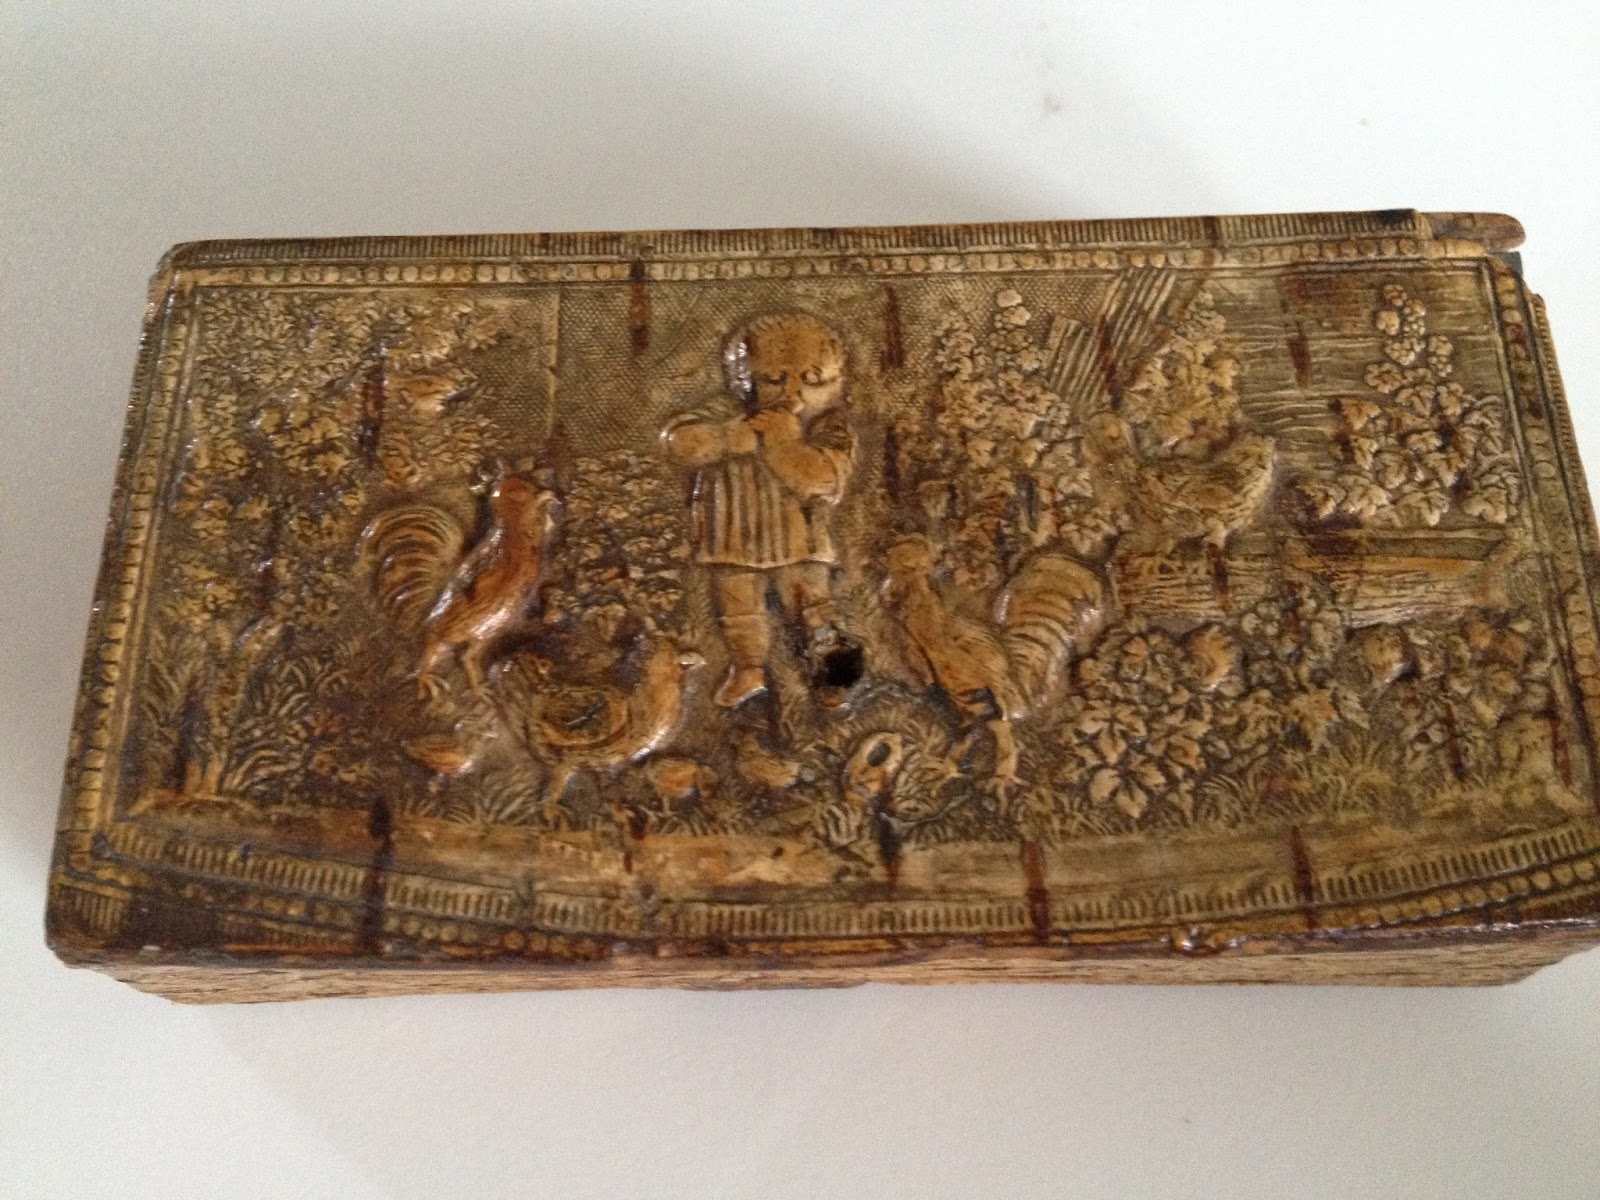 Antique Hunter Wooden Box Carved With Little Boy And Chickens